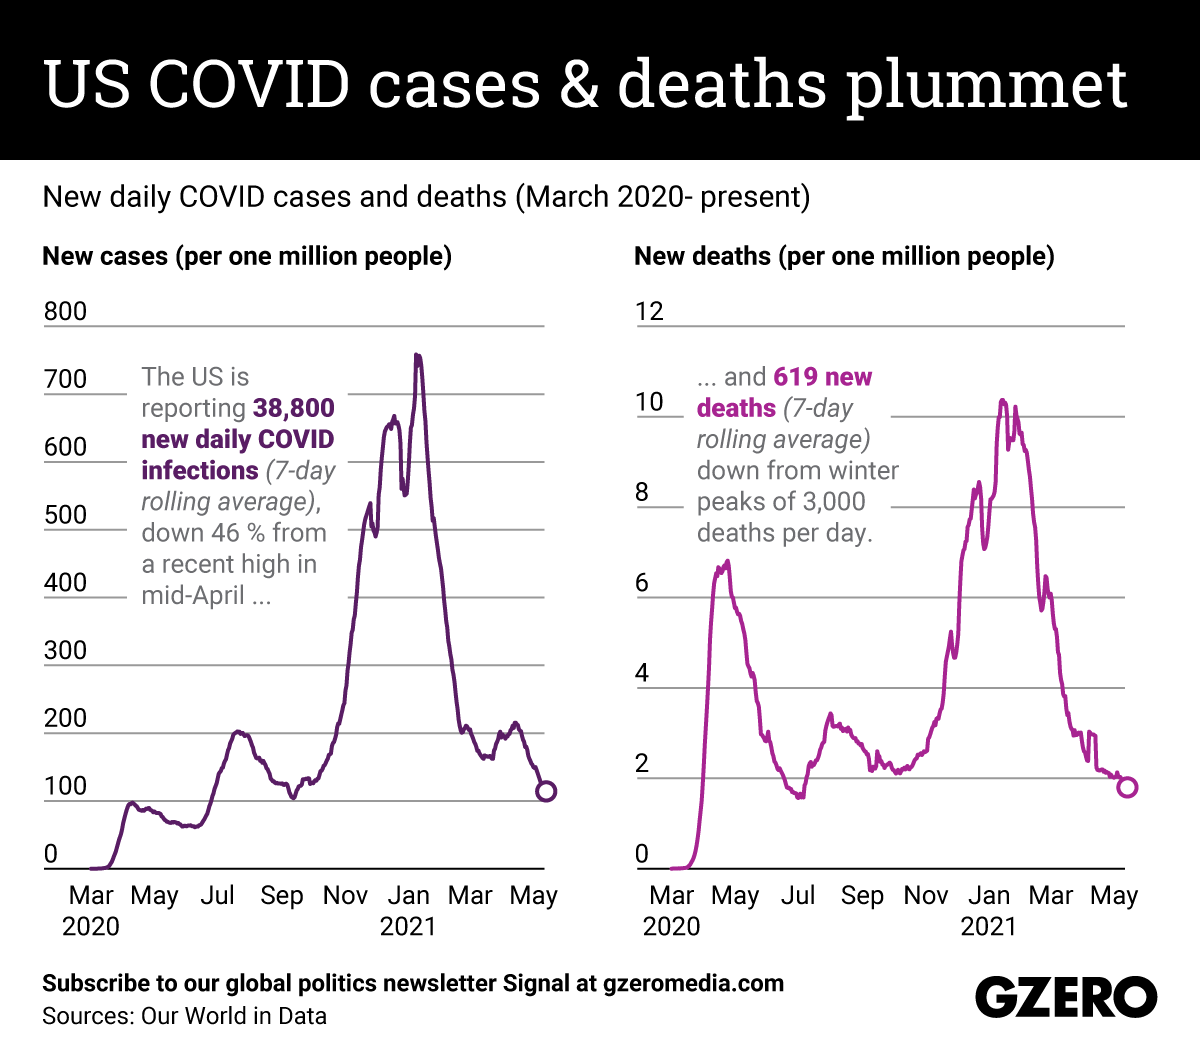 The Graphic Truth: US COVID cases and deaths plummet